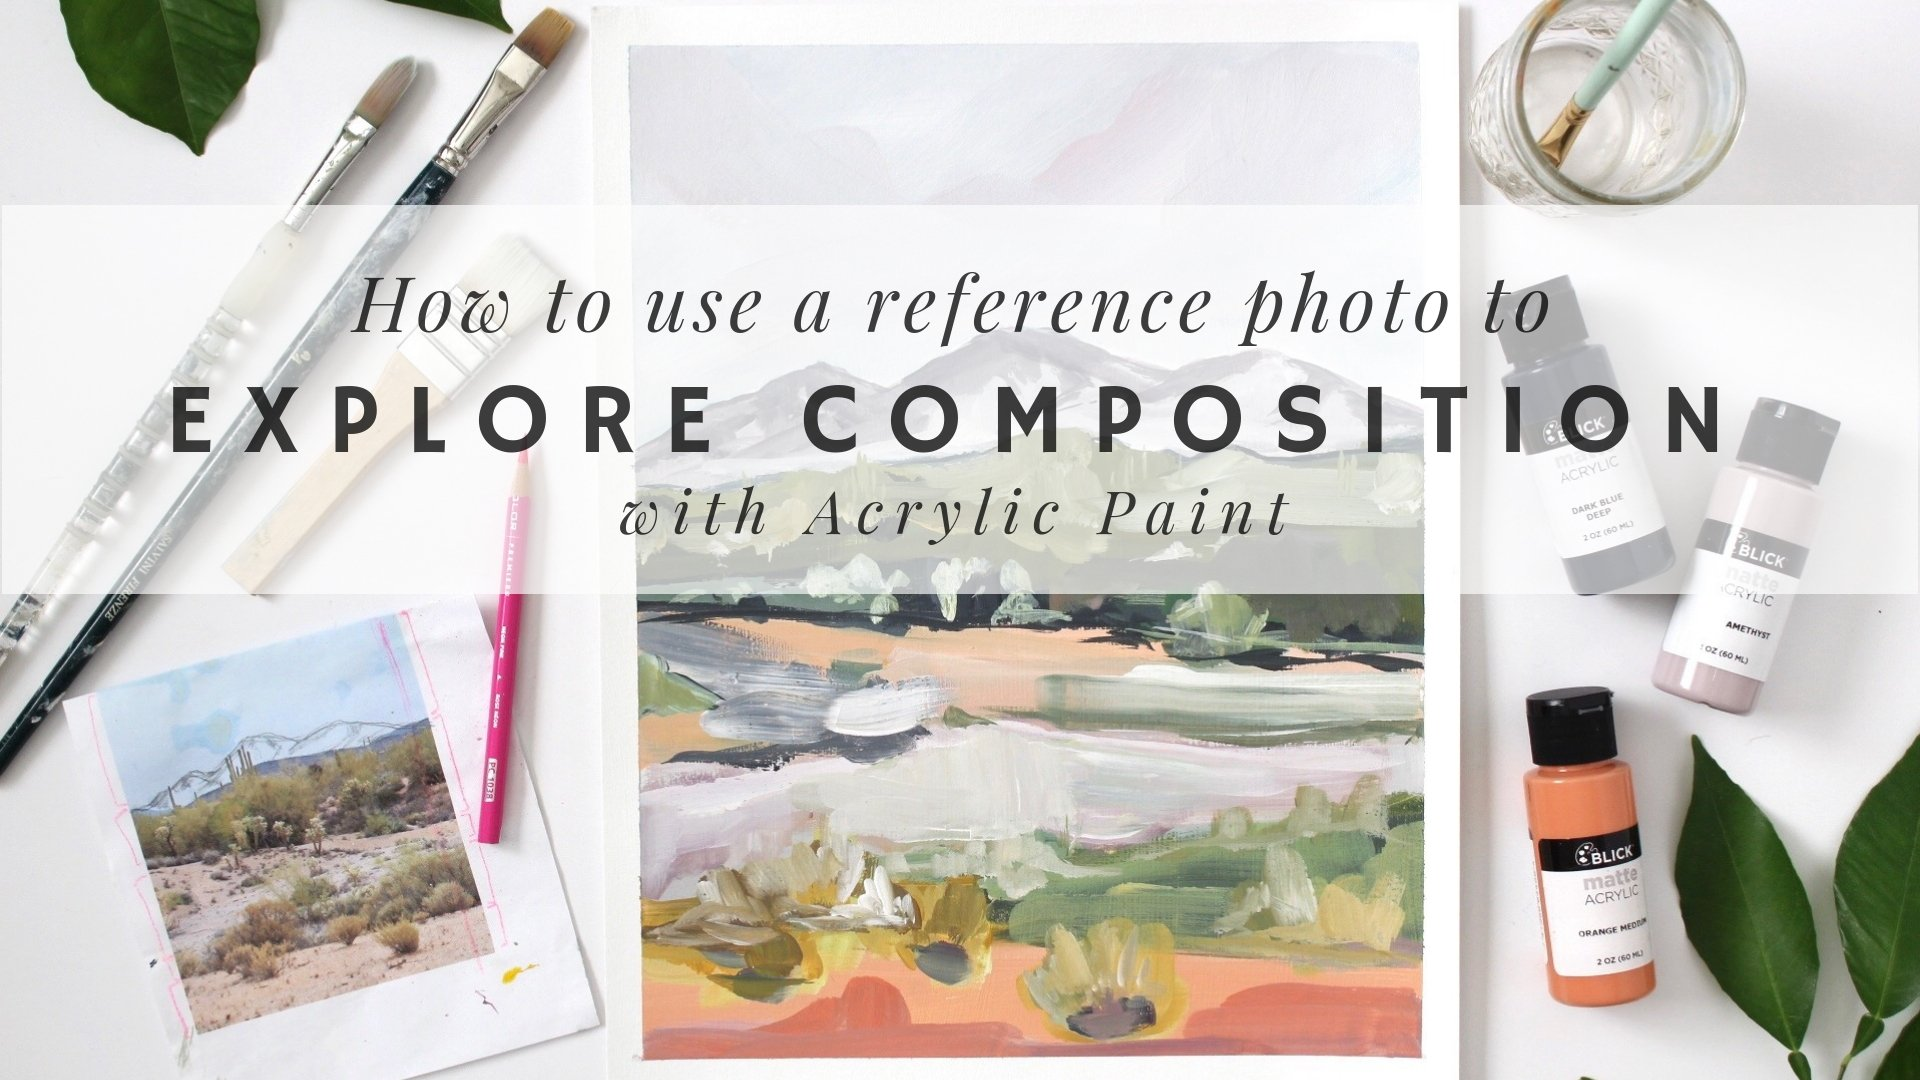 Acrylic Painting: Explore A New Composition Using A Reference Photo